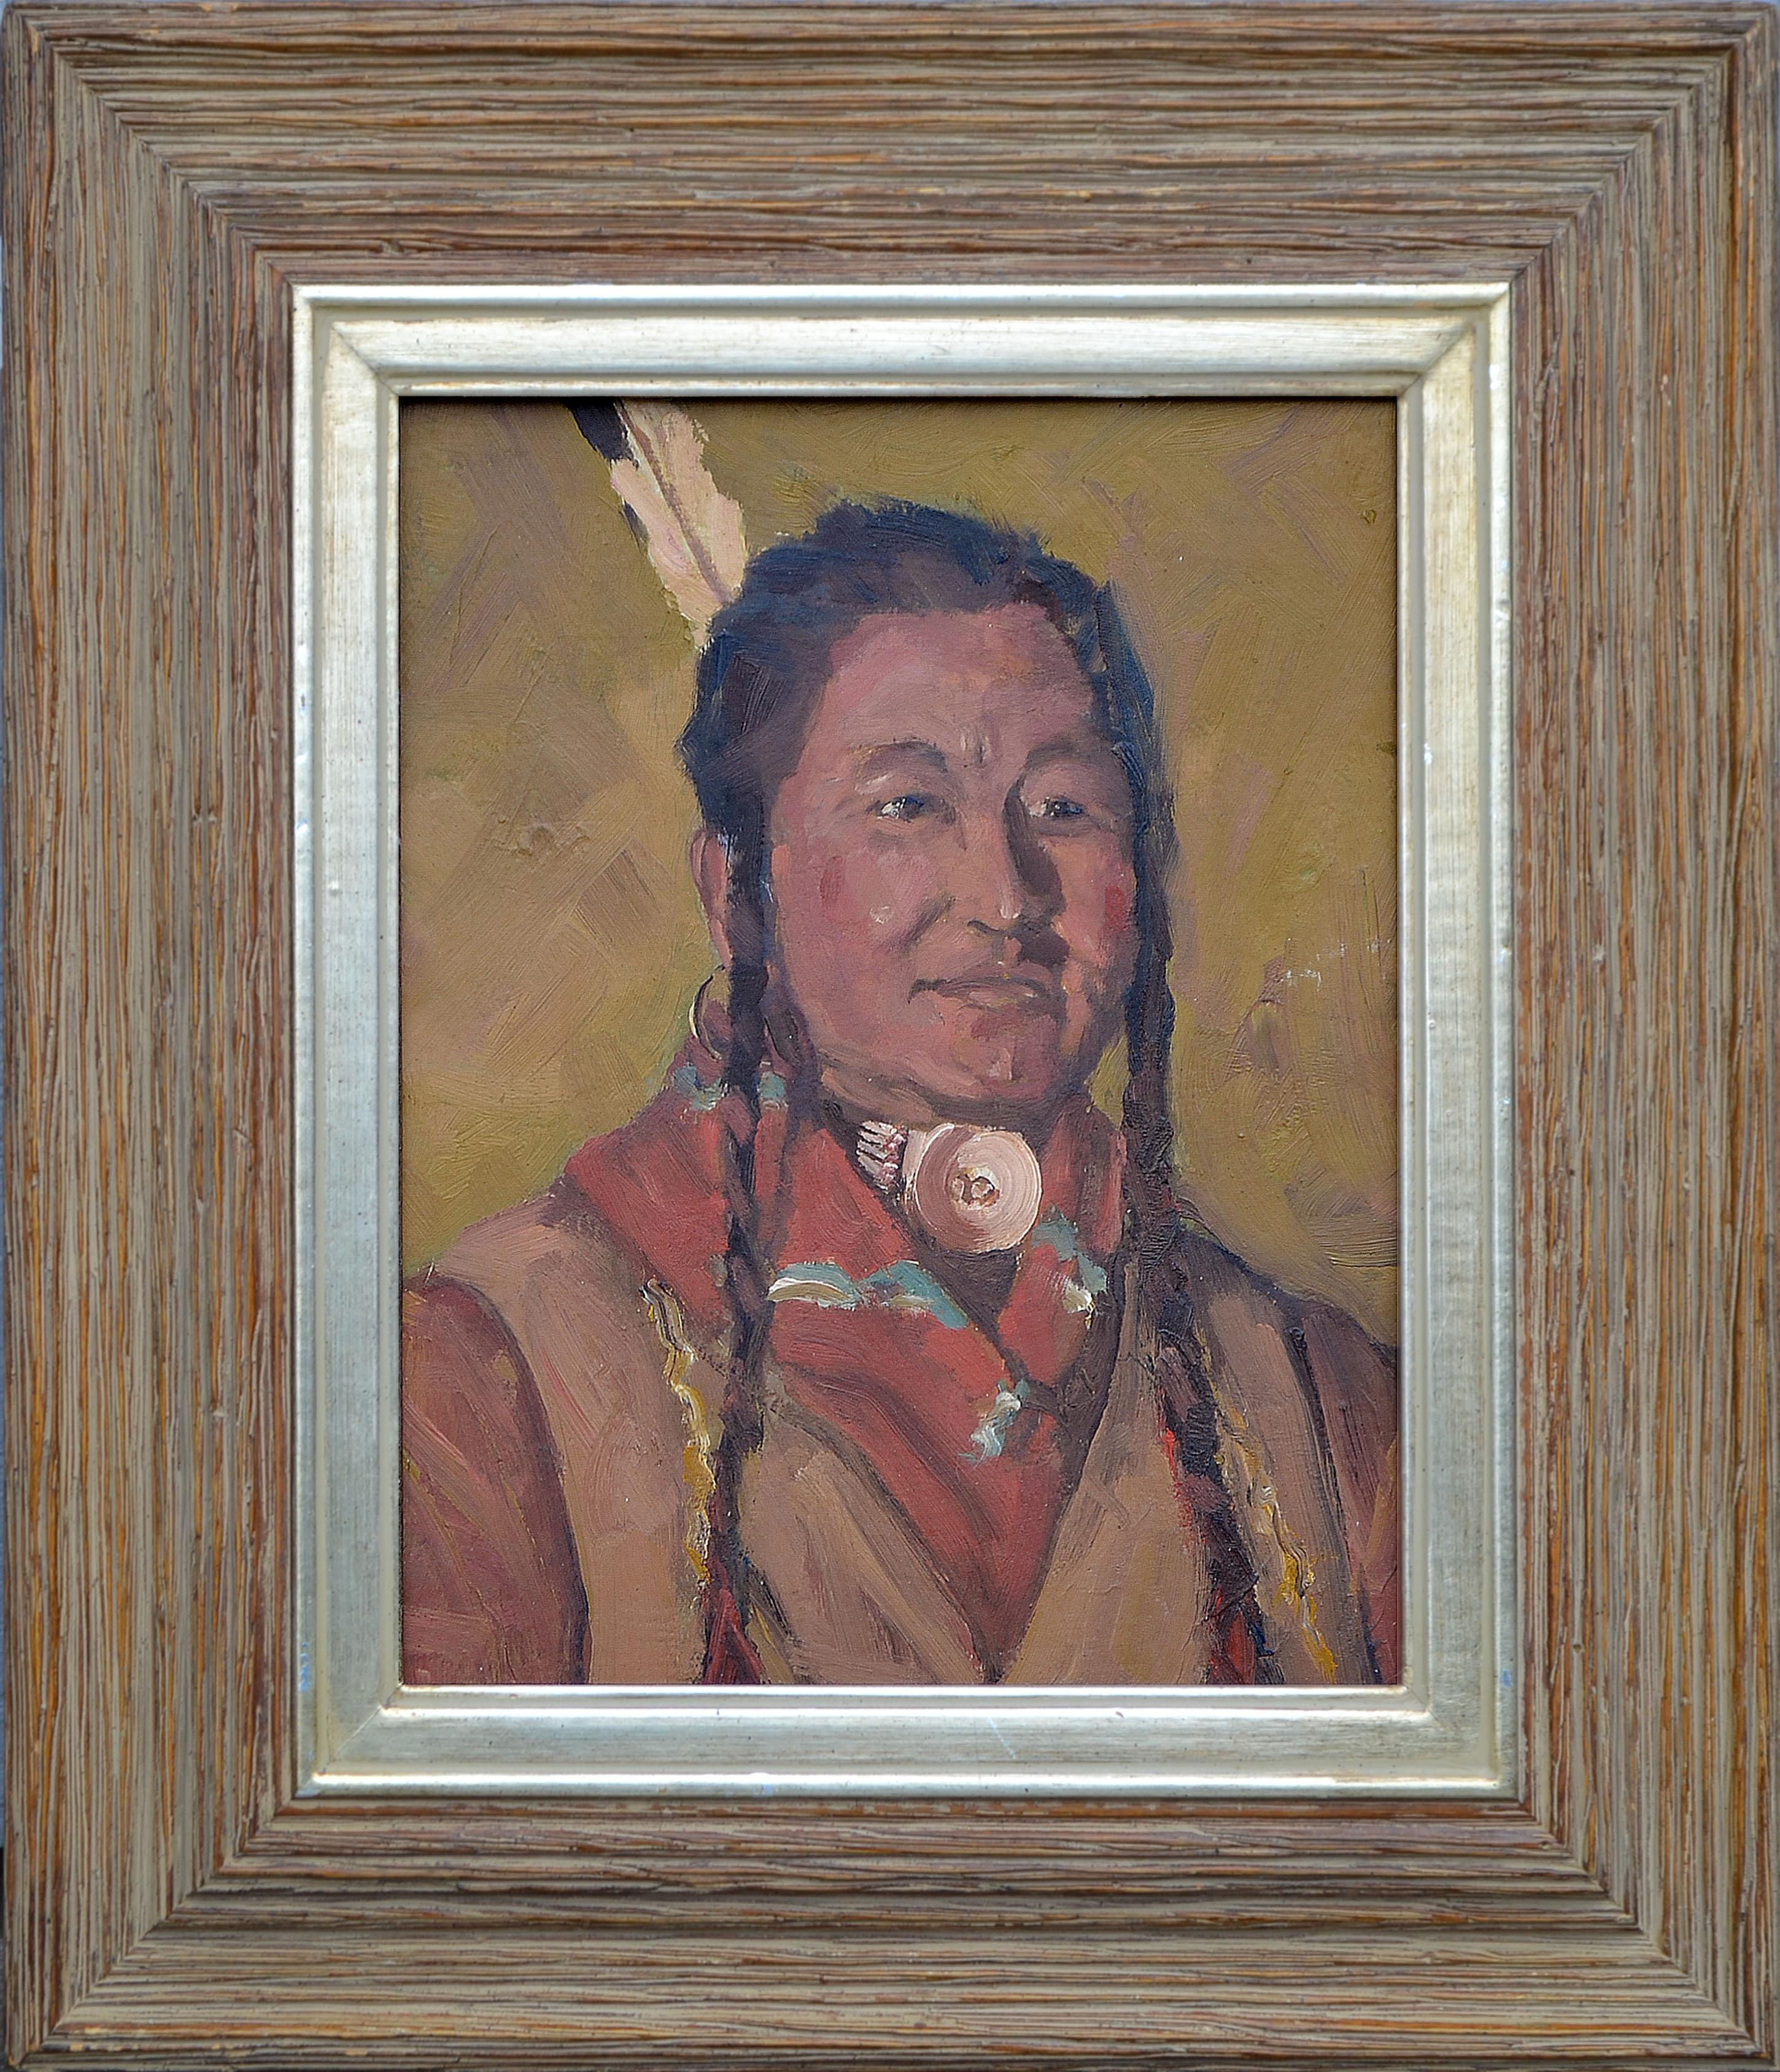 Portrait of a Native American Man with Shell Necklace